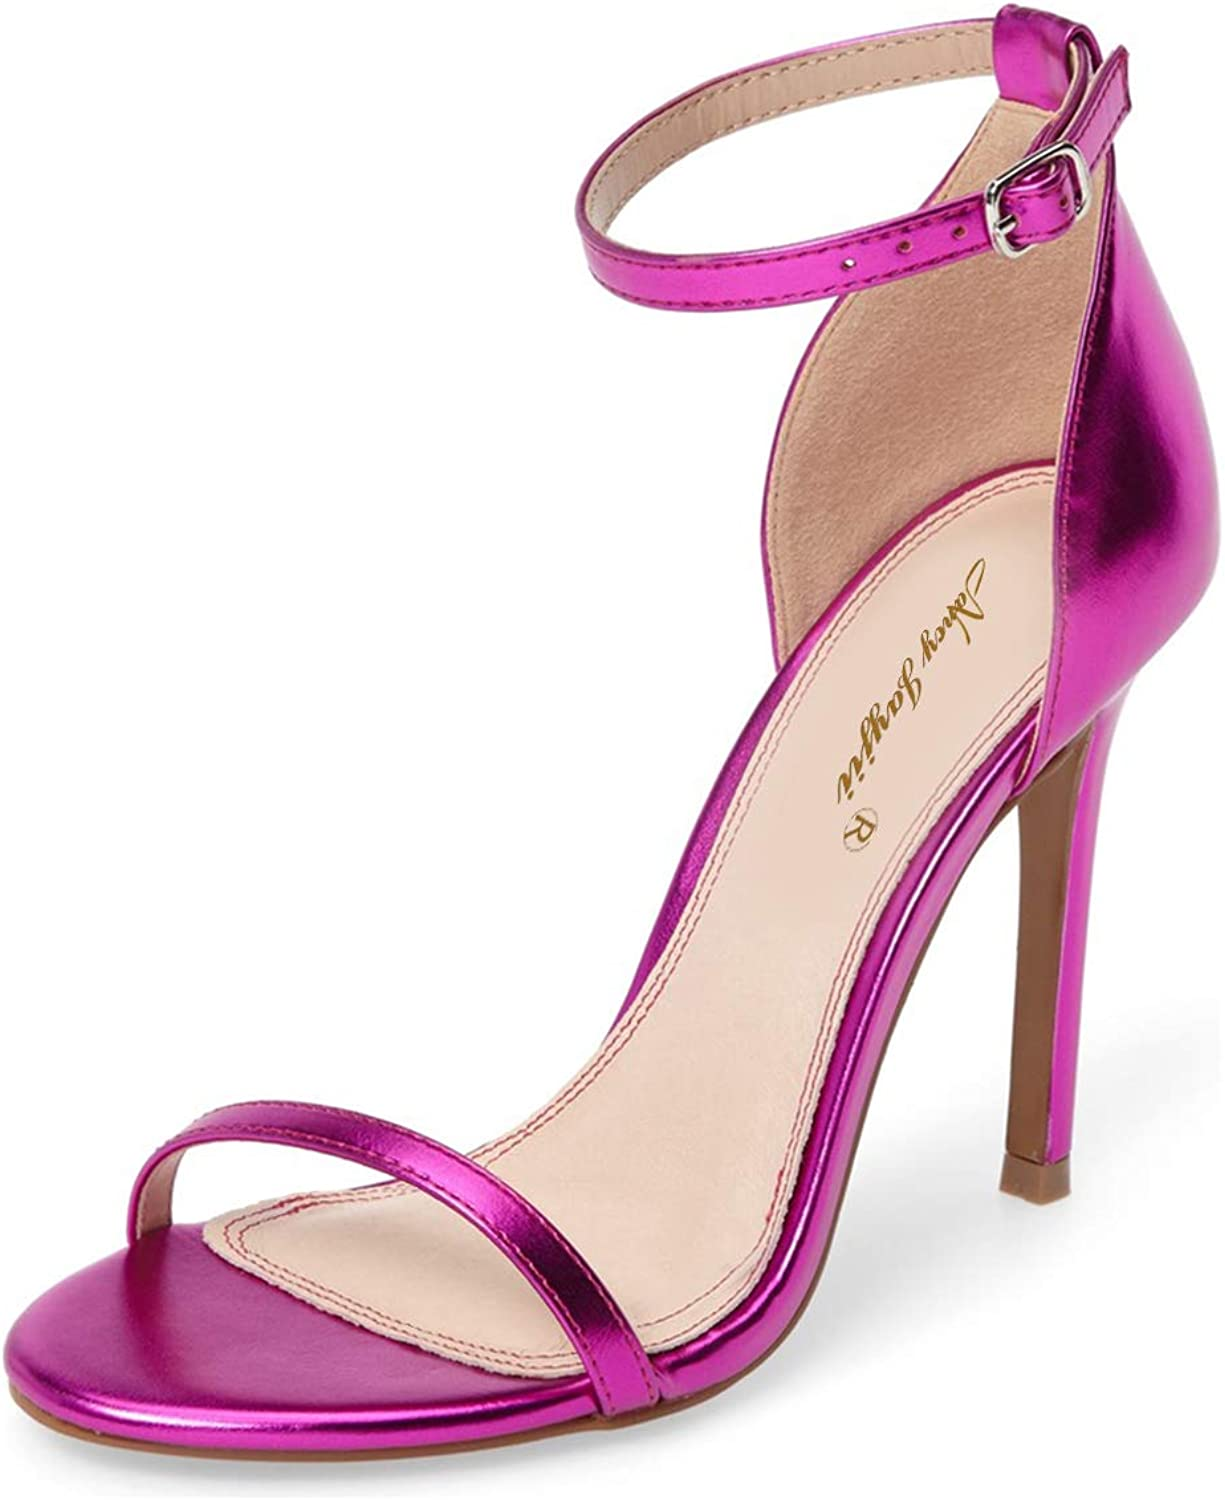 NJ Women Classic D'Orsay Office Lady Sandals Open Toe High Heel Ankle Strap Dress Pumps Cocktail Party Dancing shoes